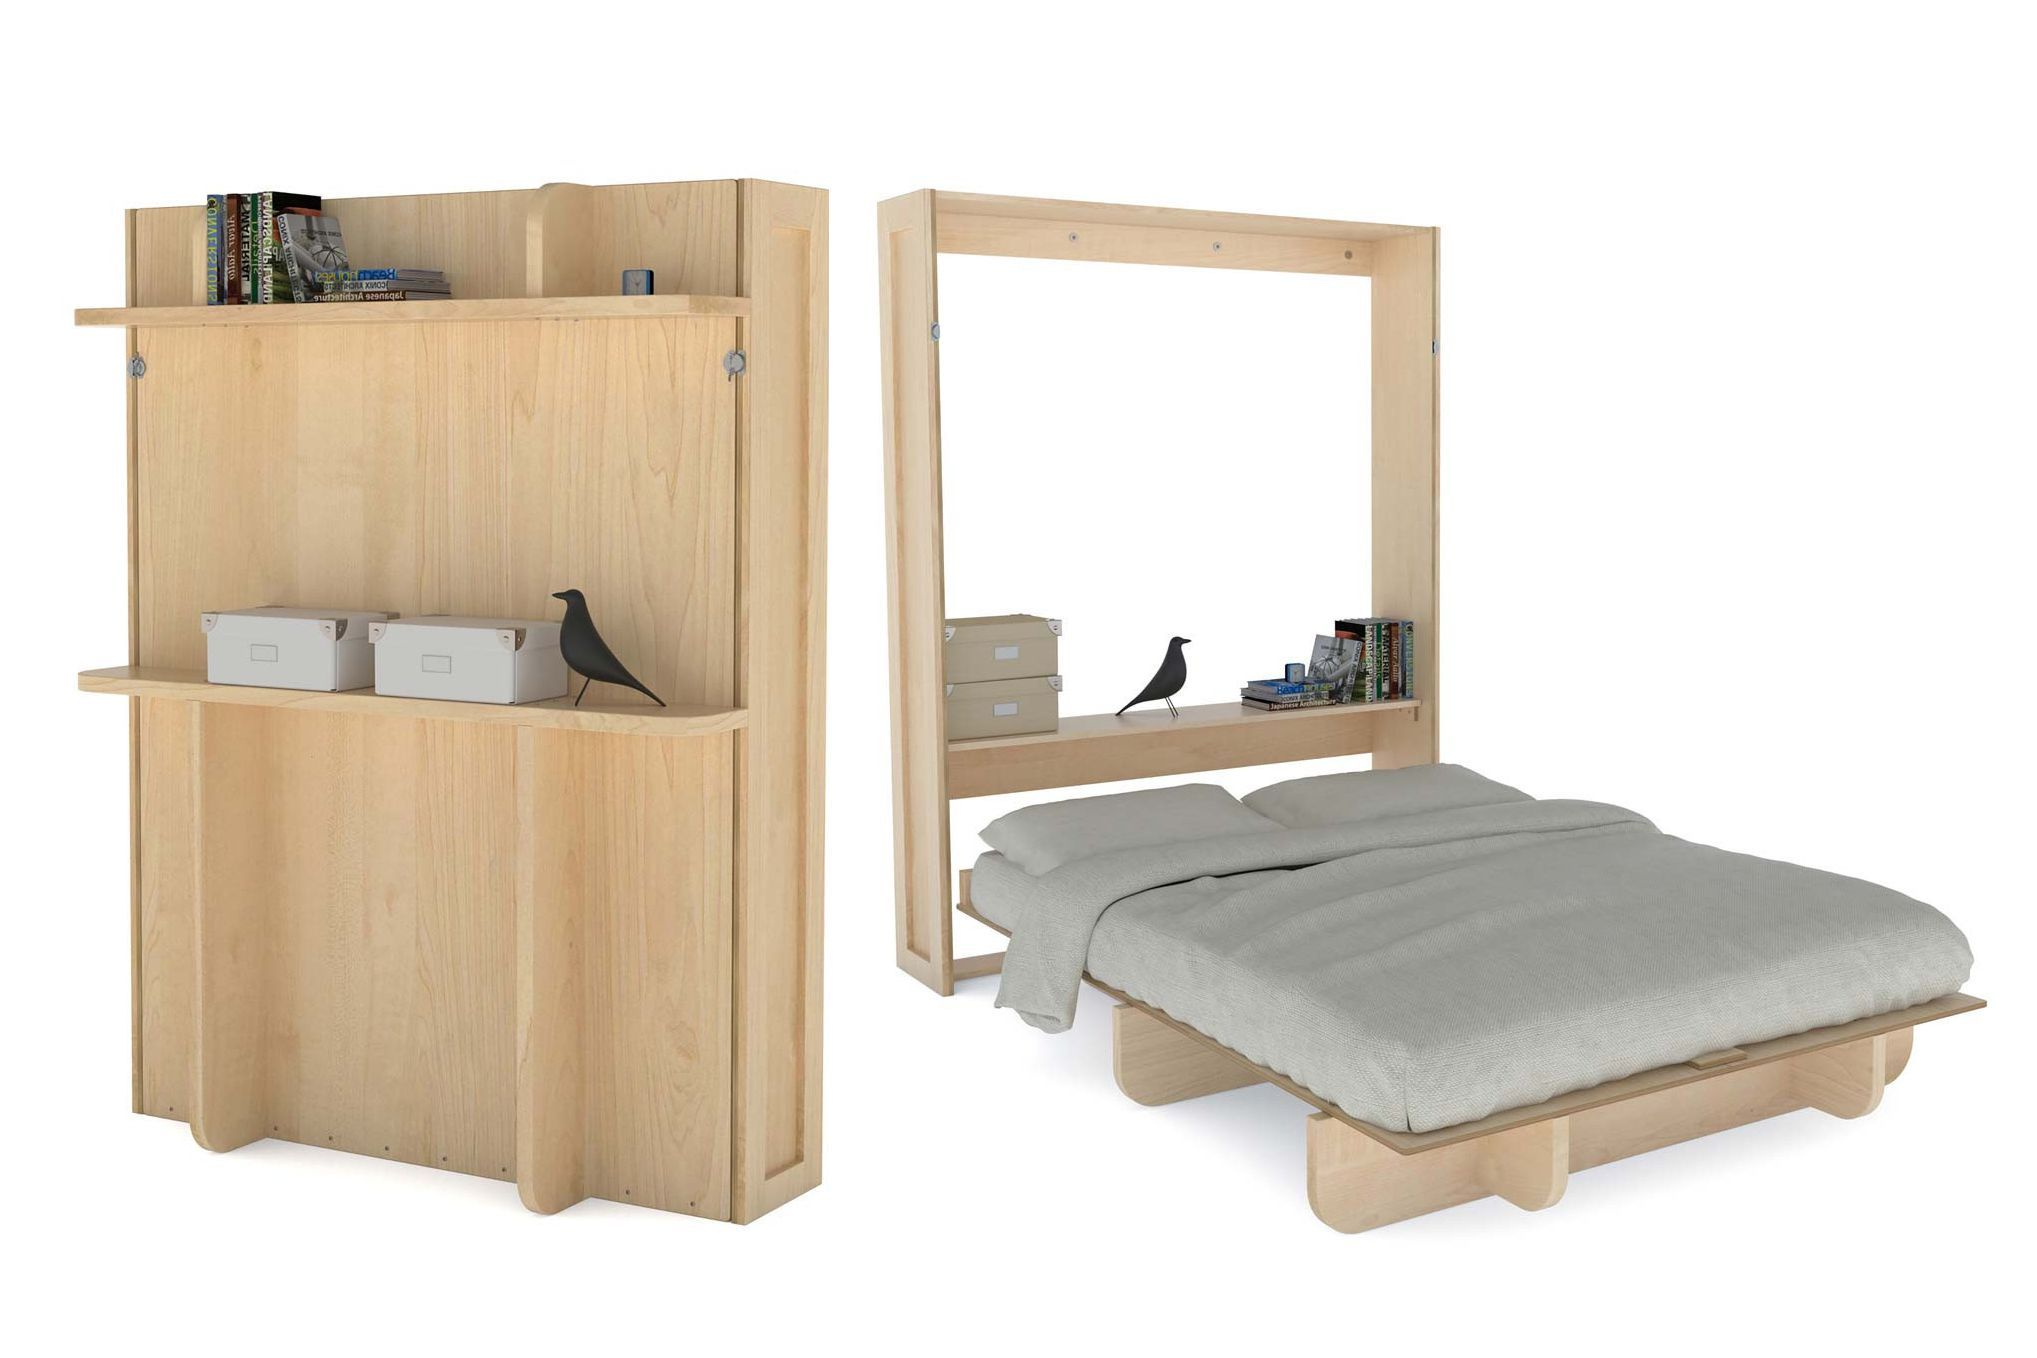 71 Awesome Photos Of Full Size Bed Frame With Storage Underneath